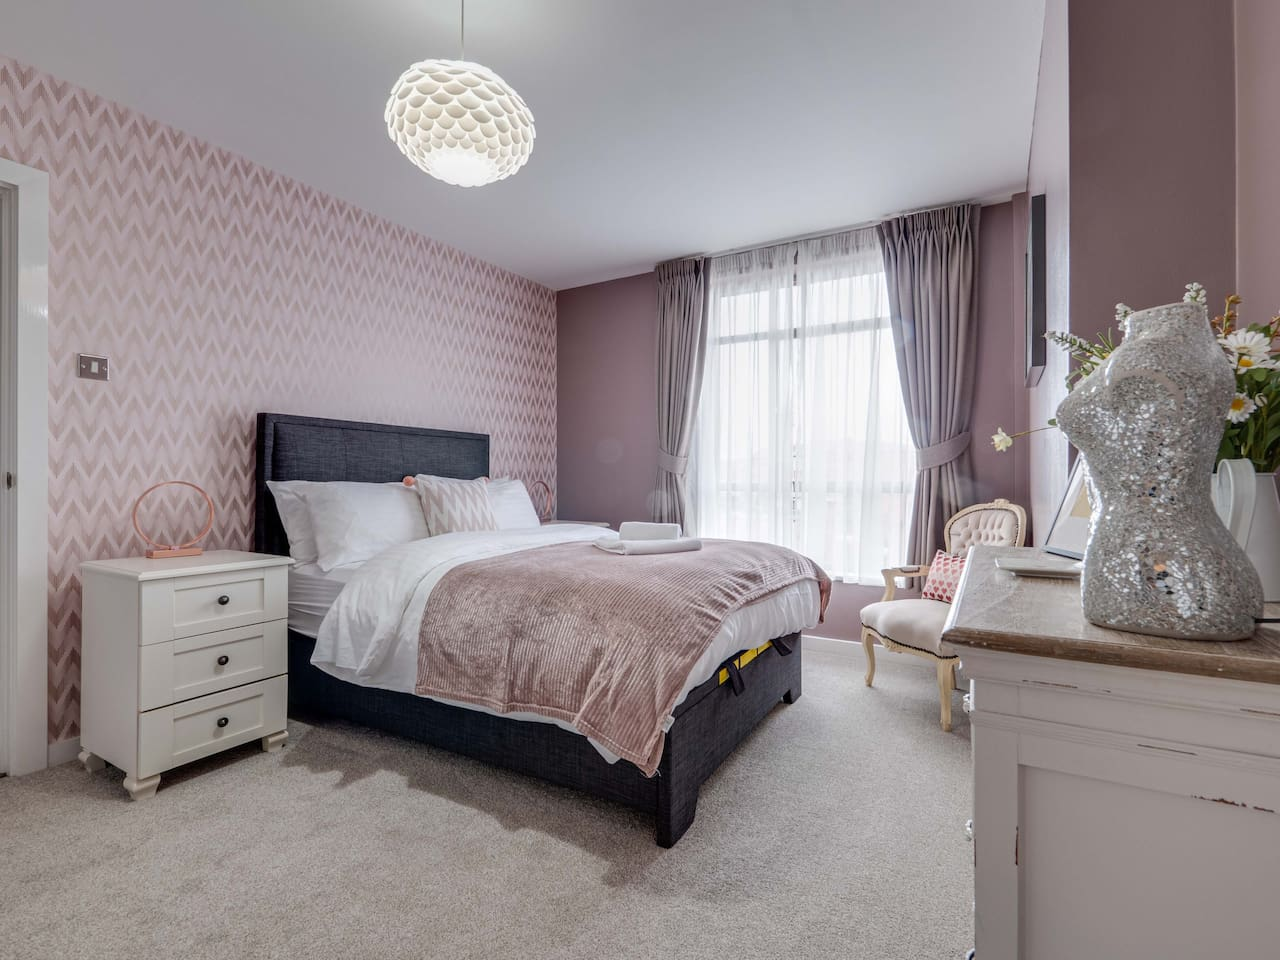 Large deluxe master room with super comfy bed and en-suite